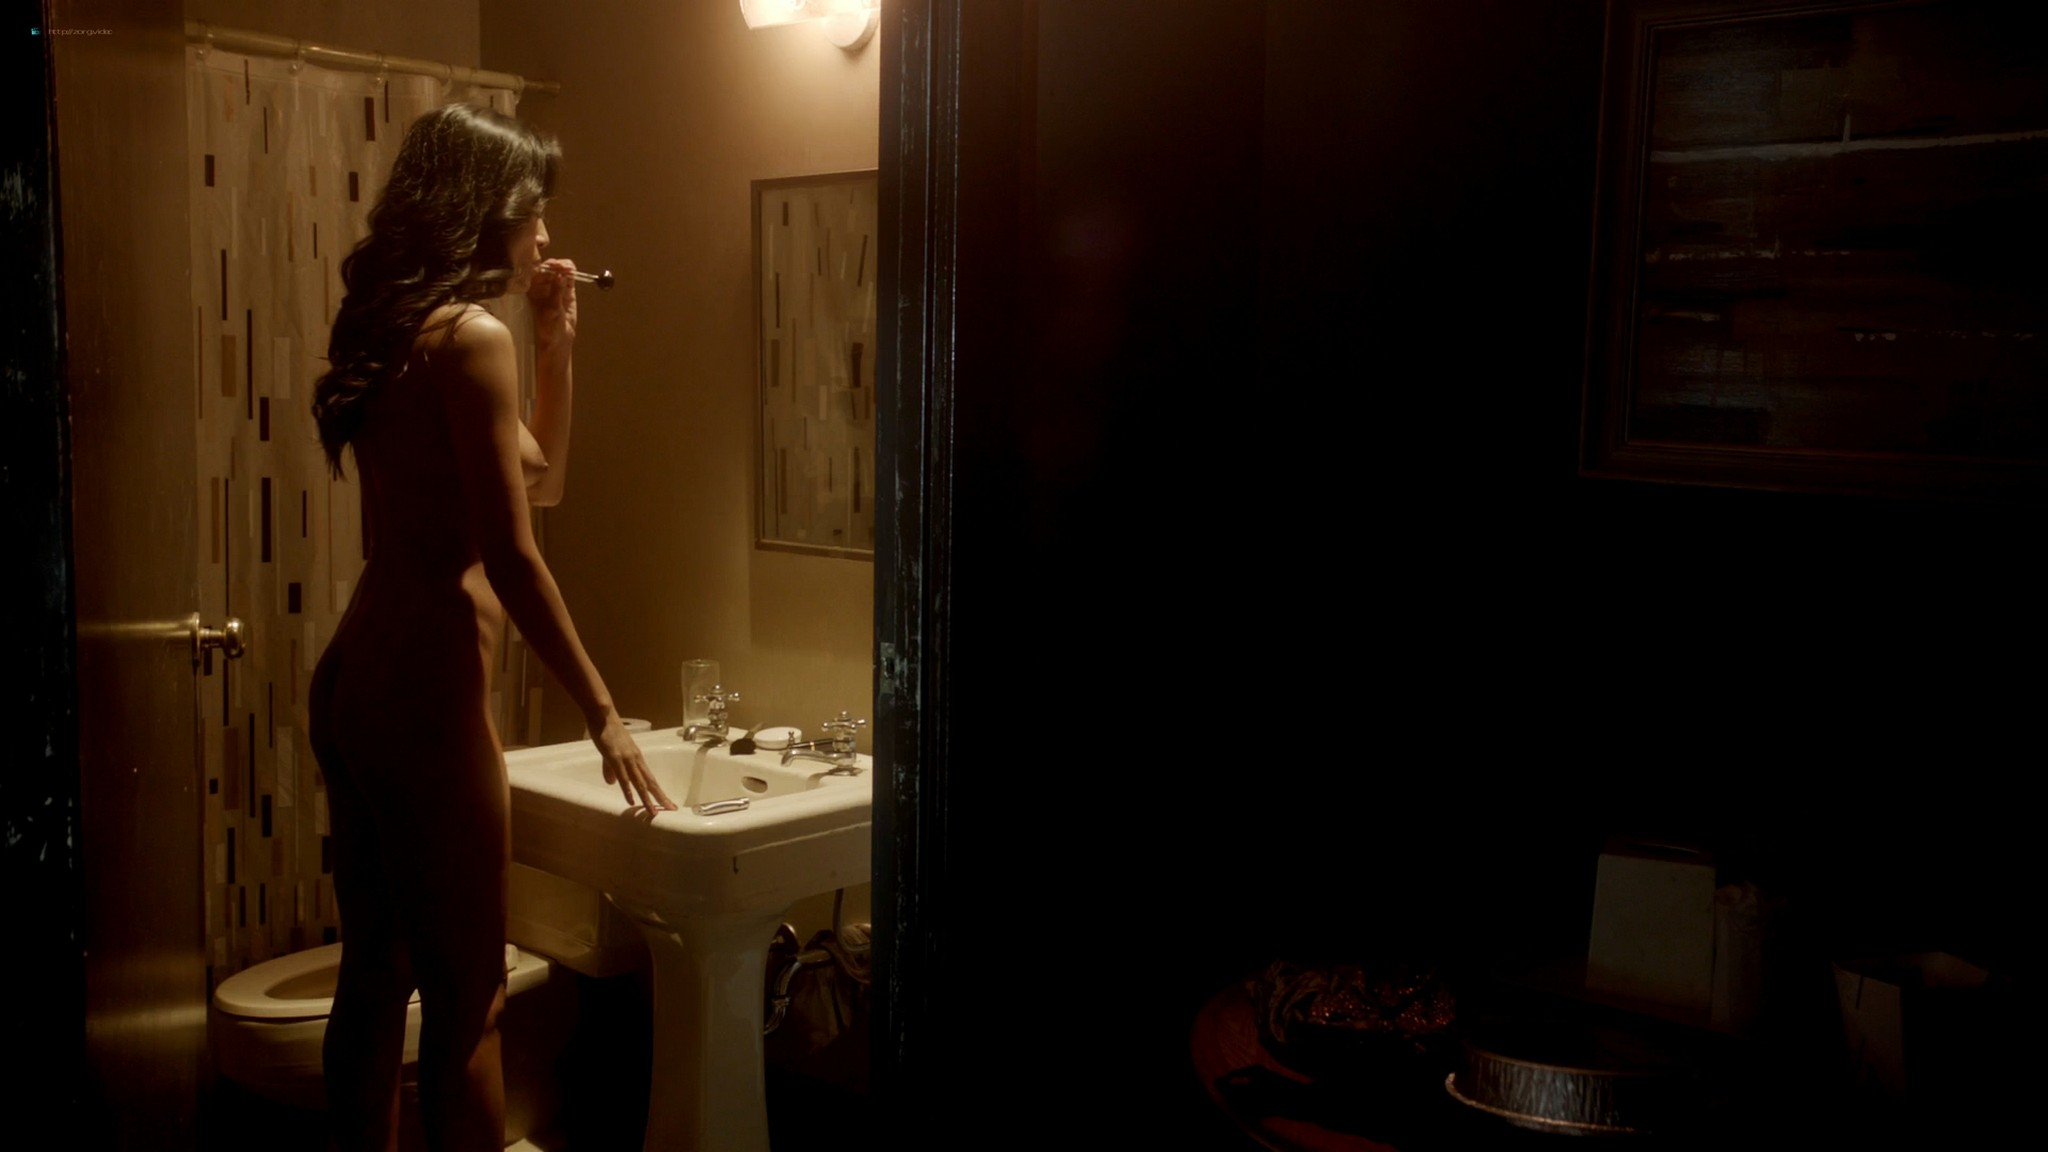 Kira Clavell nude full frontal Leah Gibson nude sex - Rogue (2013) s1e3 HD 1080p (5)